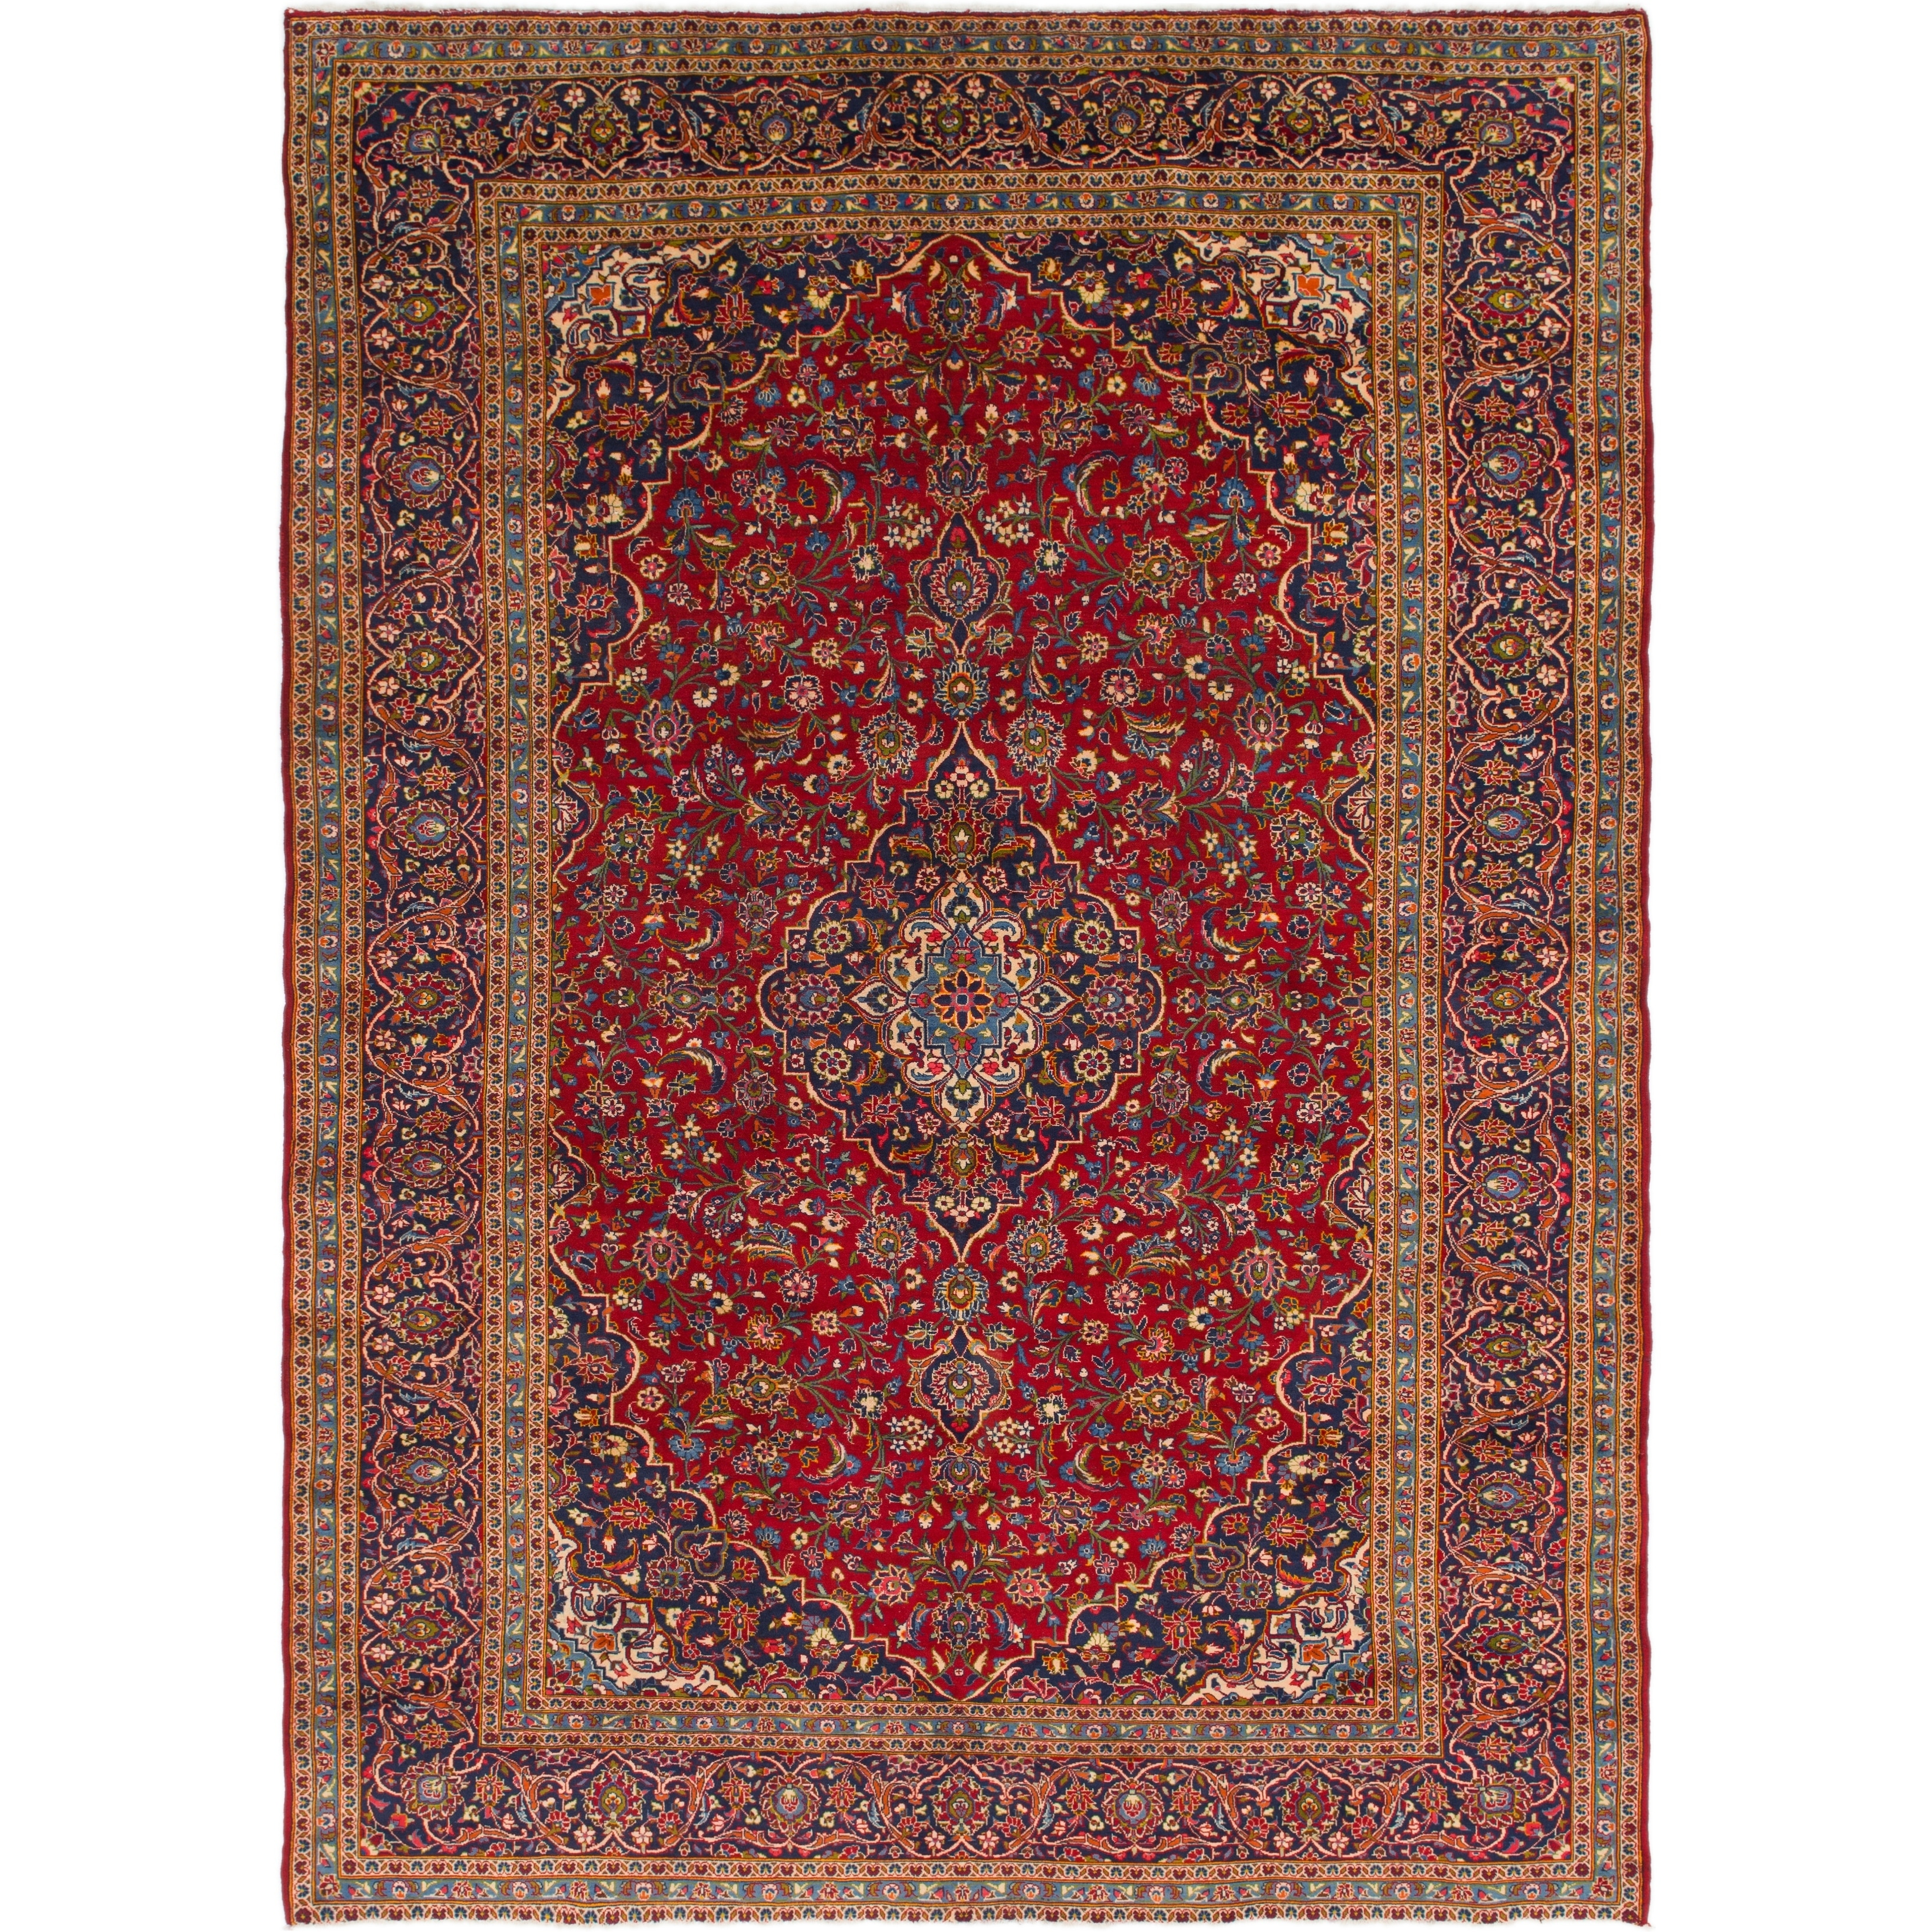 Hand Knotted Kashan Wool Area Rug - 9 8 x 13 7 (Red - 9 8 x 13 7)